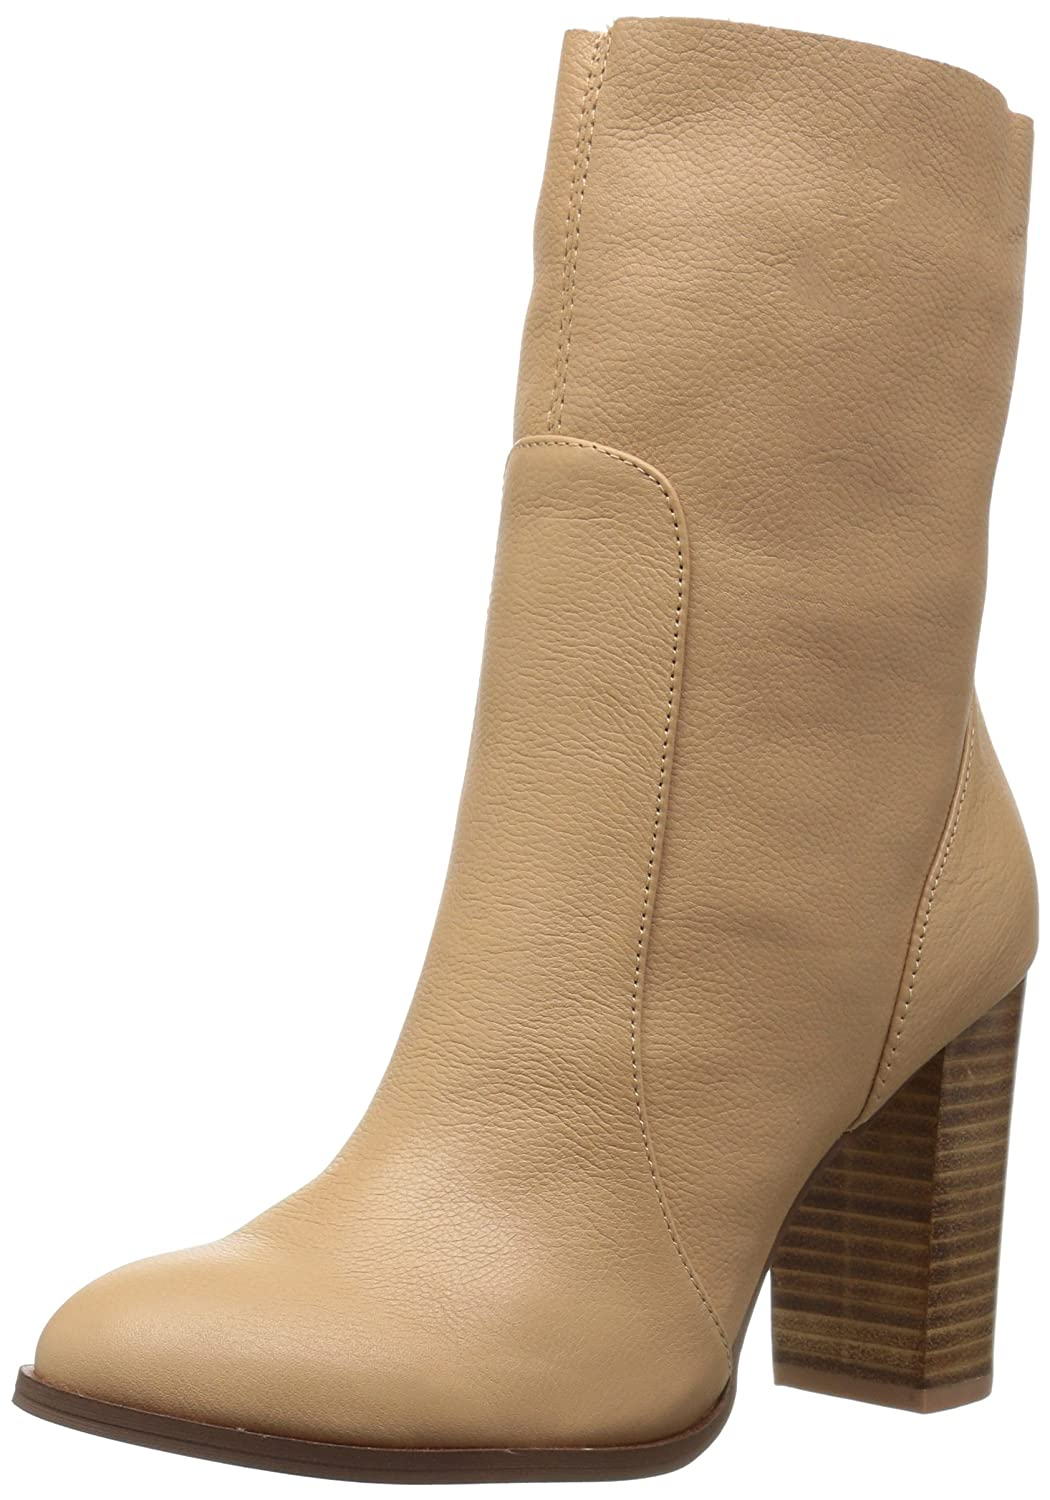 Chinese Laundry Women's Cool Kid Boot B019TOCEZG 7 B(M) US|Camel Leather